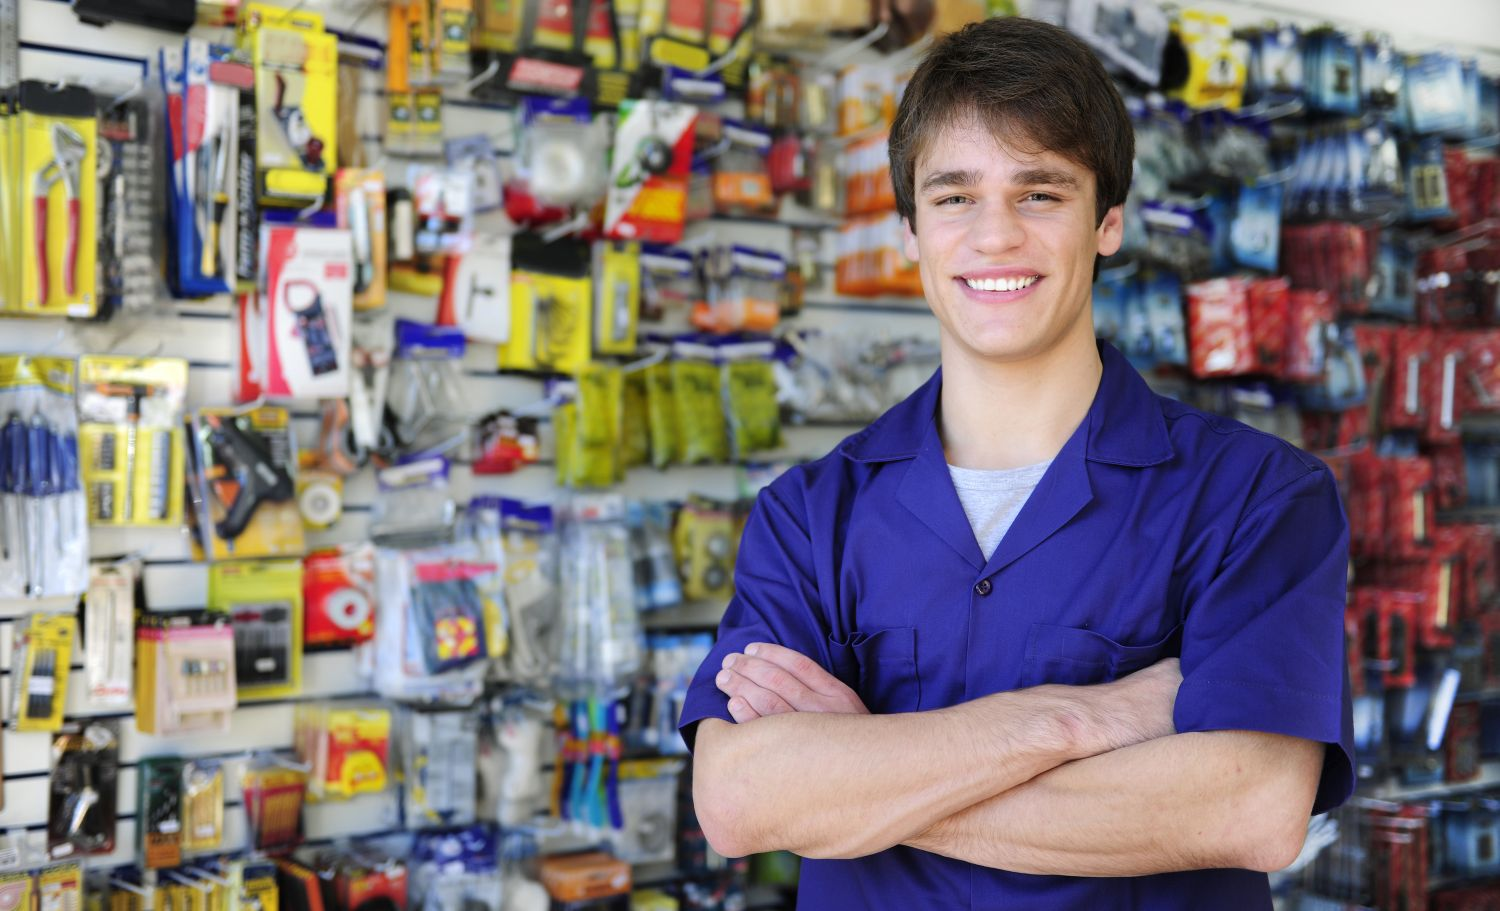 Image result for hardware store employee